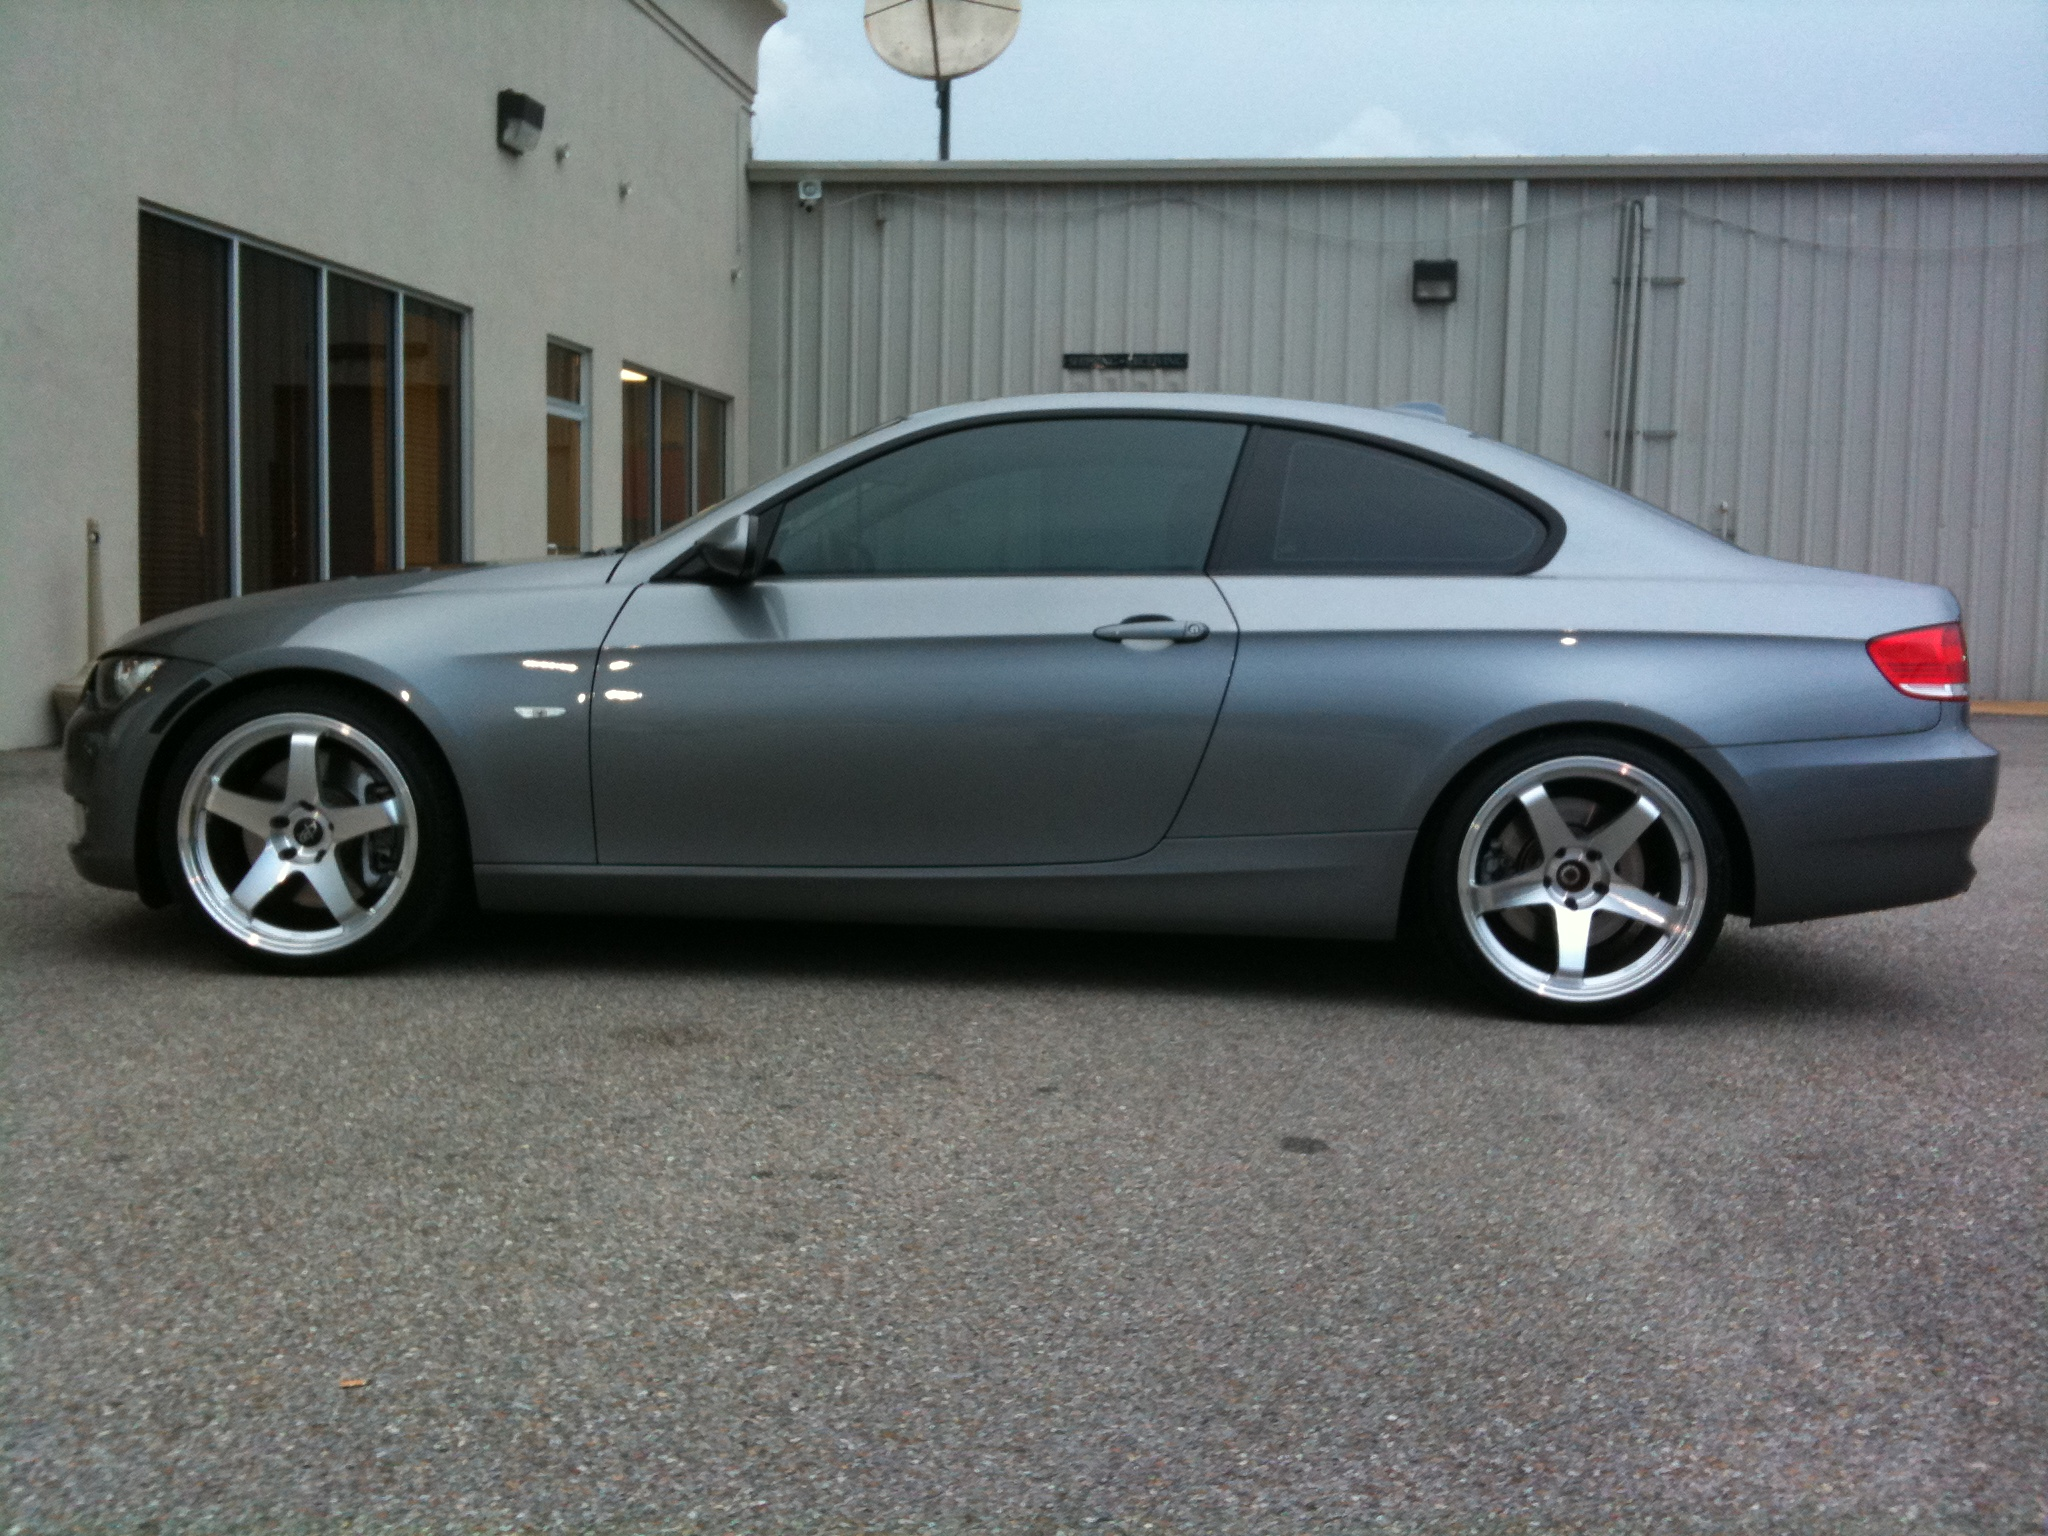 2007  BMW 335i Coupe JB3 picture, mods, upgrades